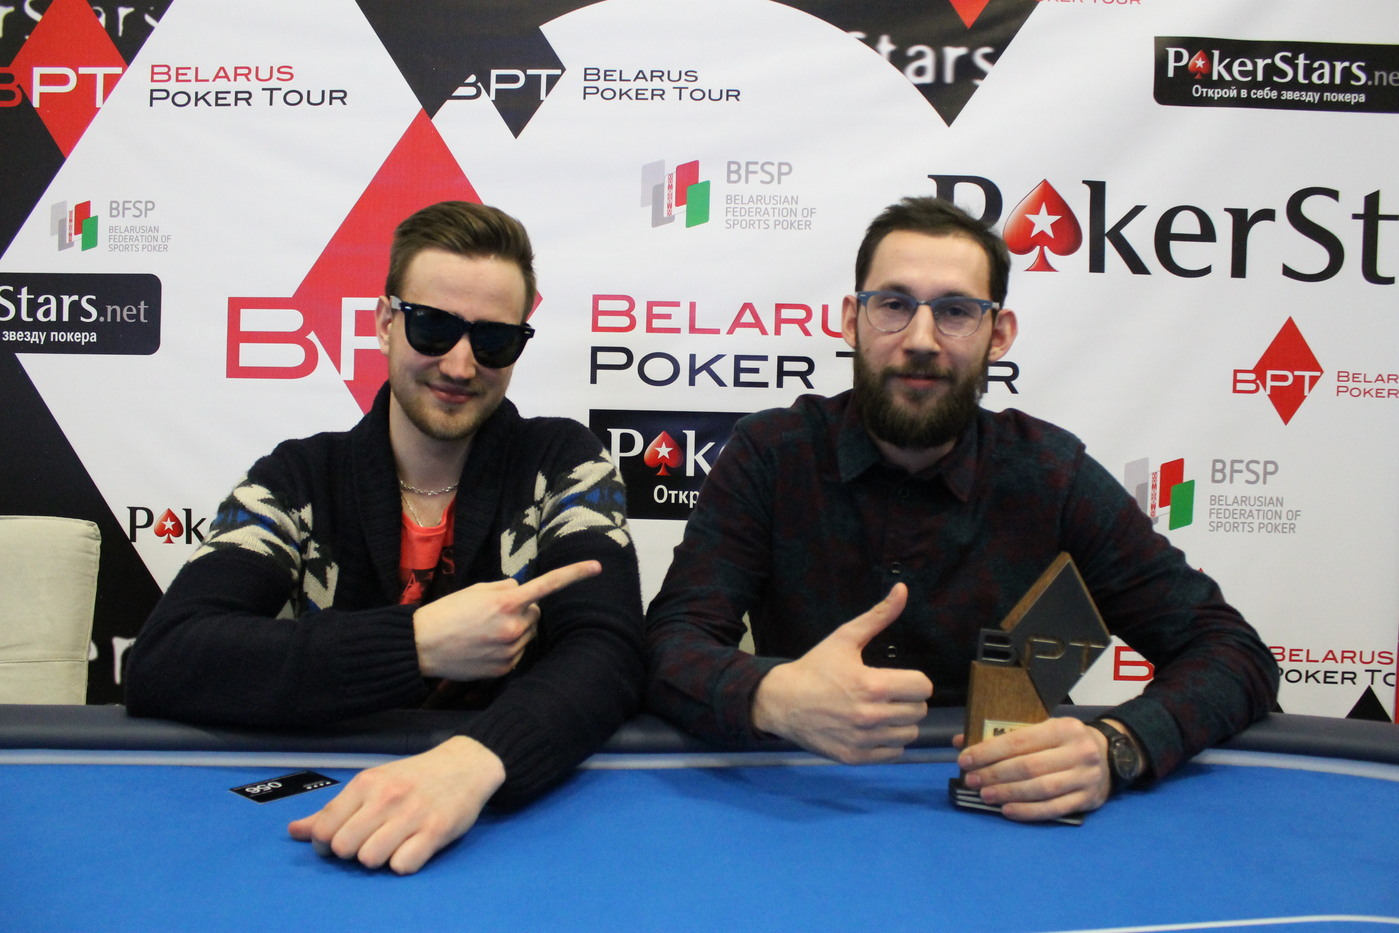 Belarus Poker Tour: Antirecession series